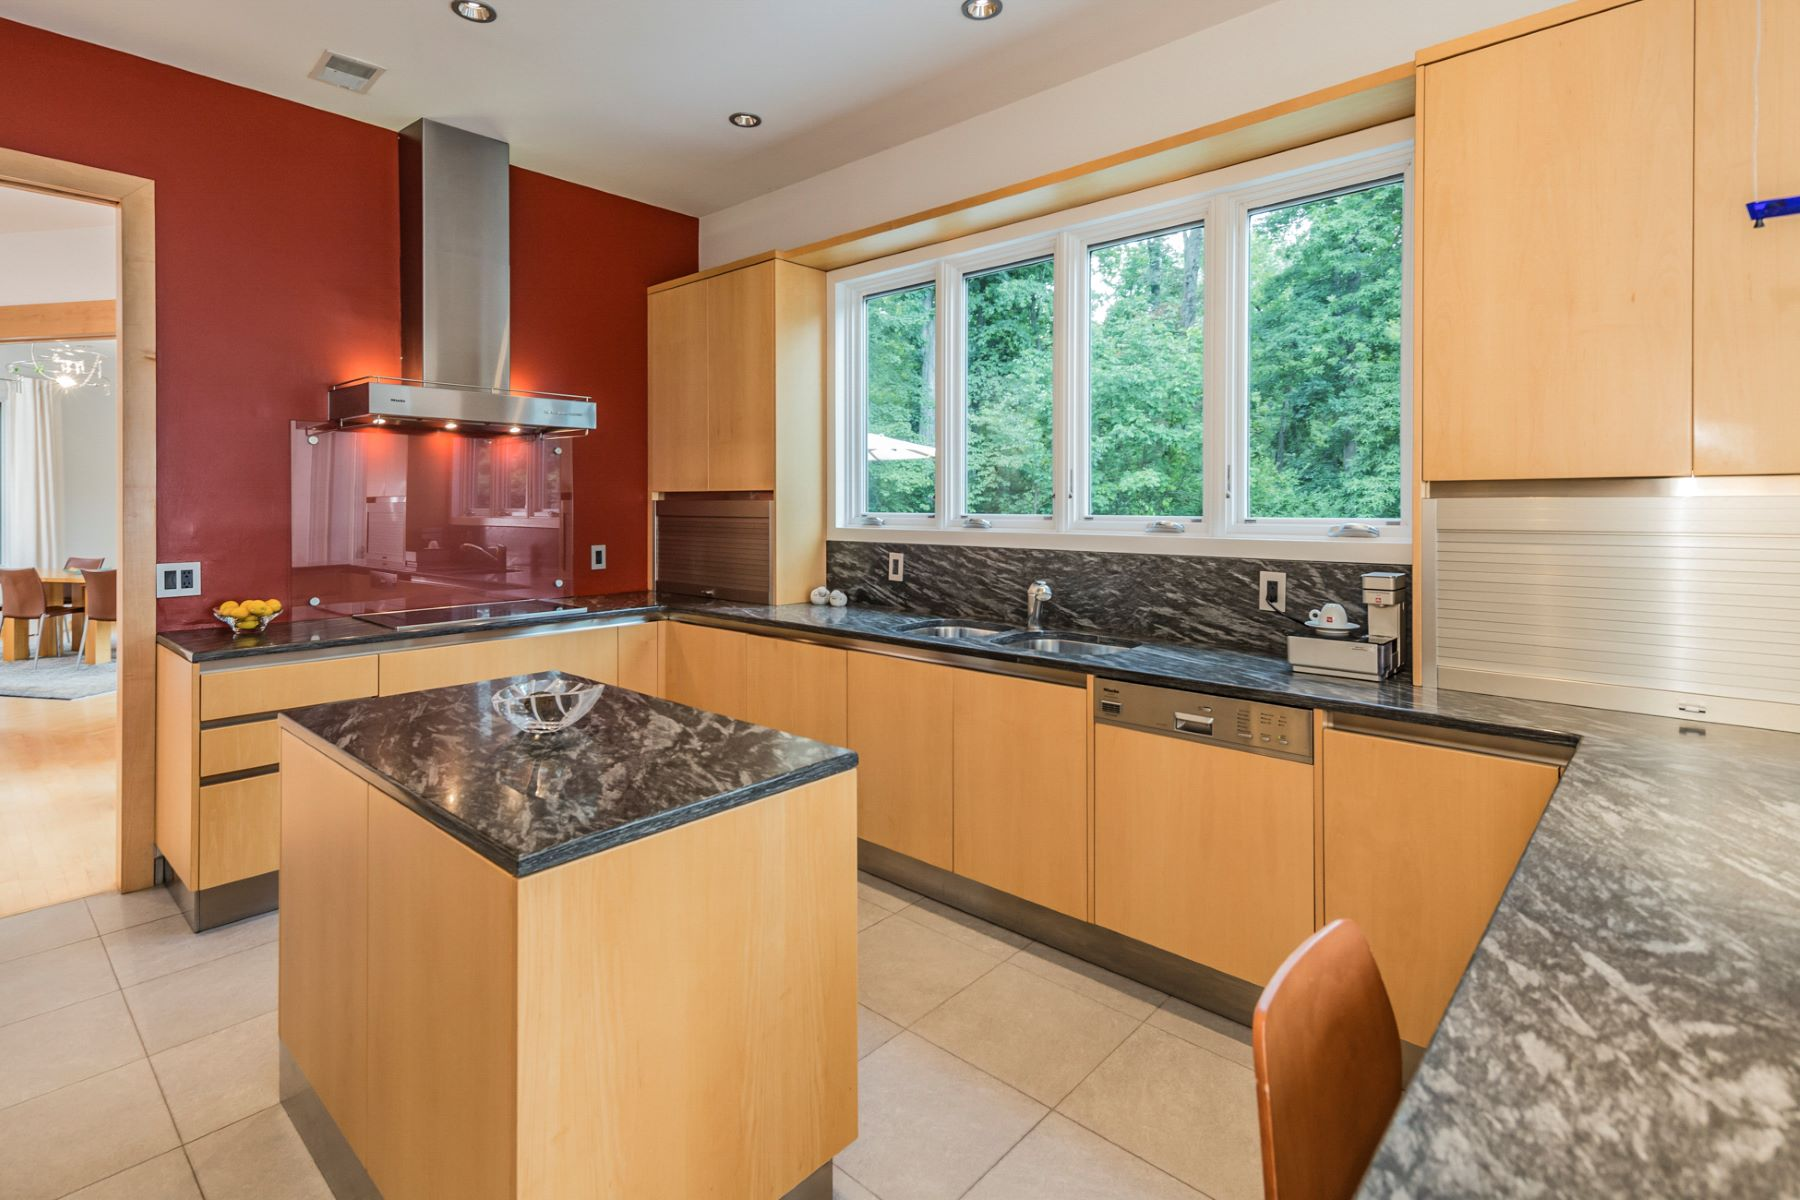 Additional photo for property listing at Airy Interiors Harmonize with Leafy Privacy 1 Hageman Lane, Princeton, New Jersey 08540 United States